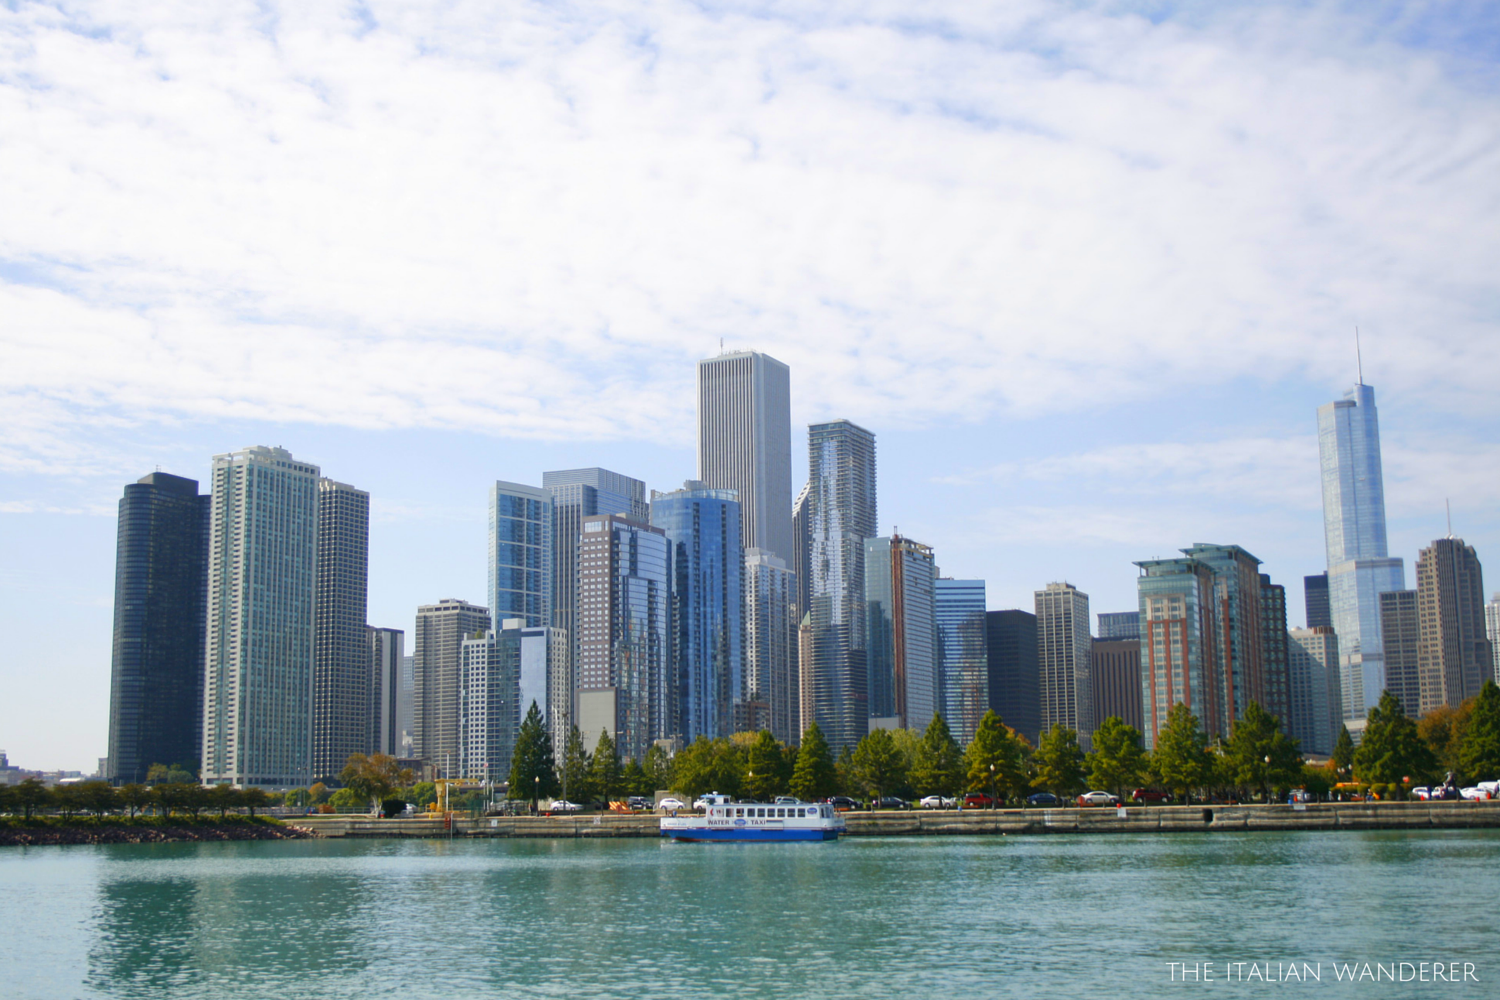 Chicago, the view from Lake Michigan